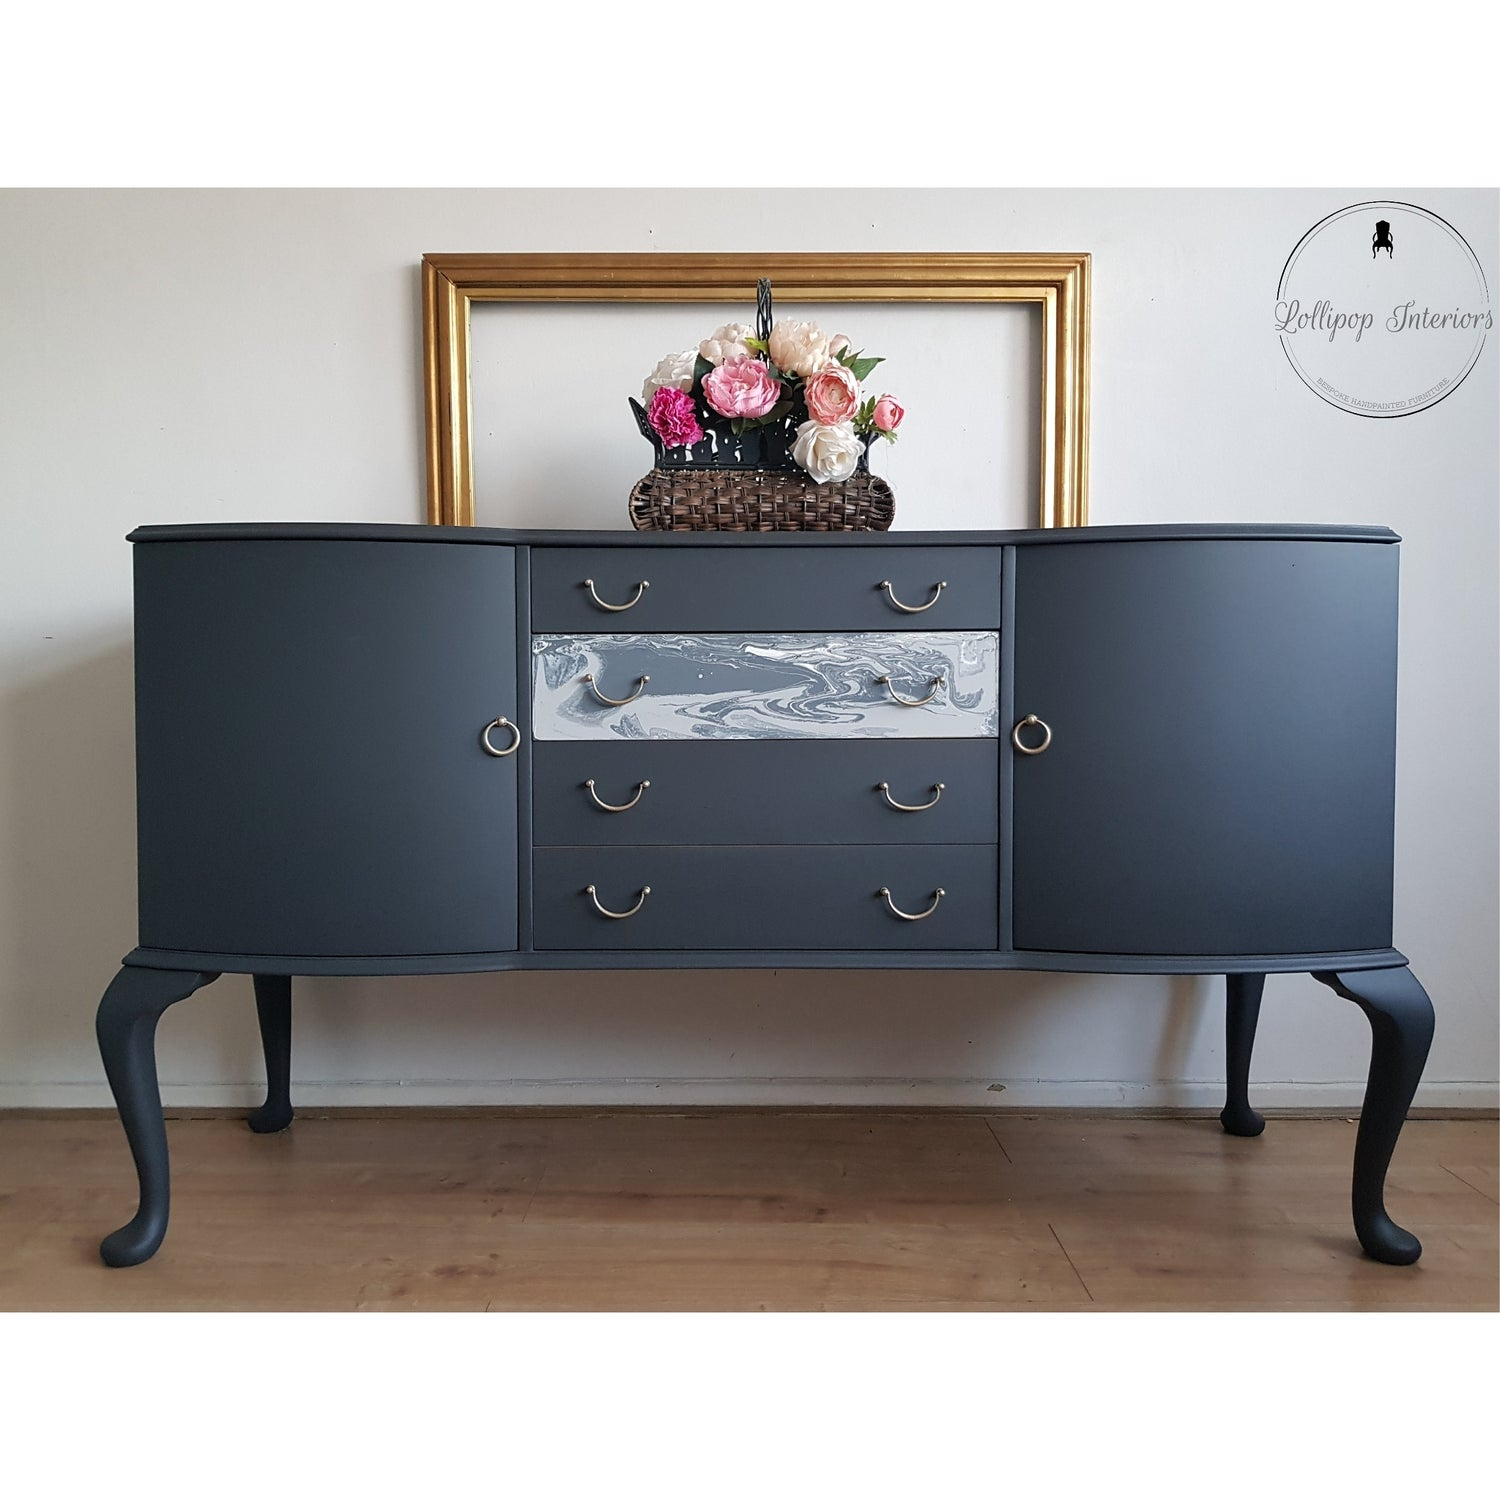 Image of William Lawrence sideboard